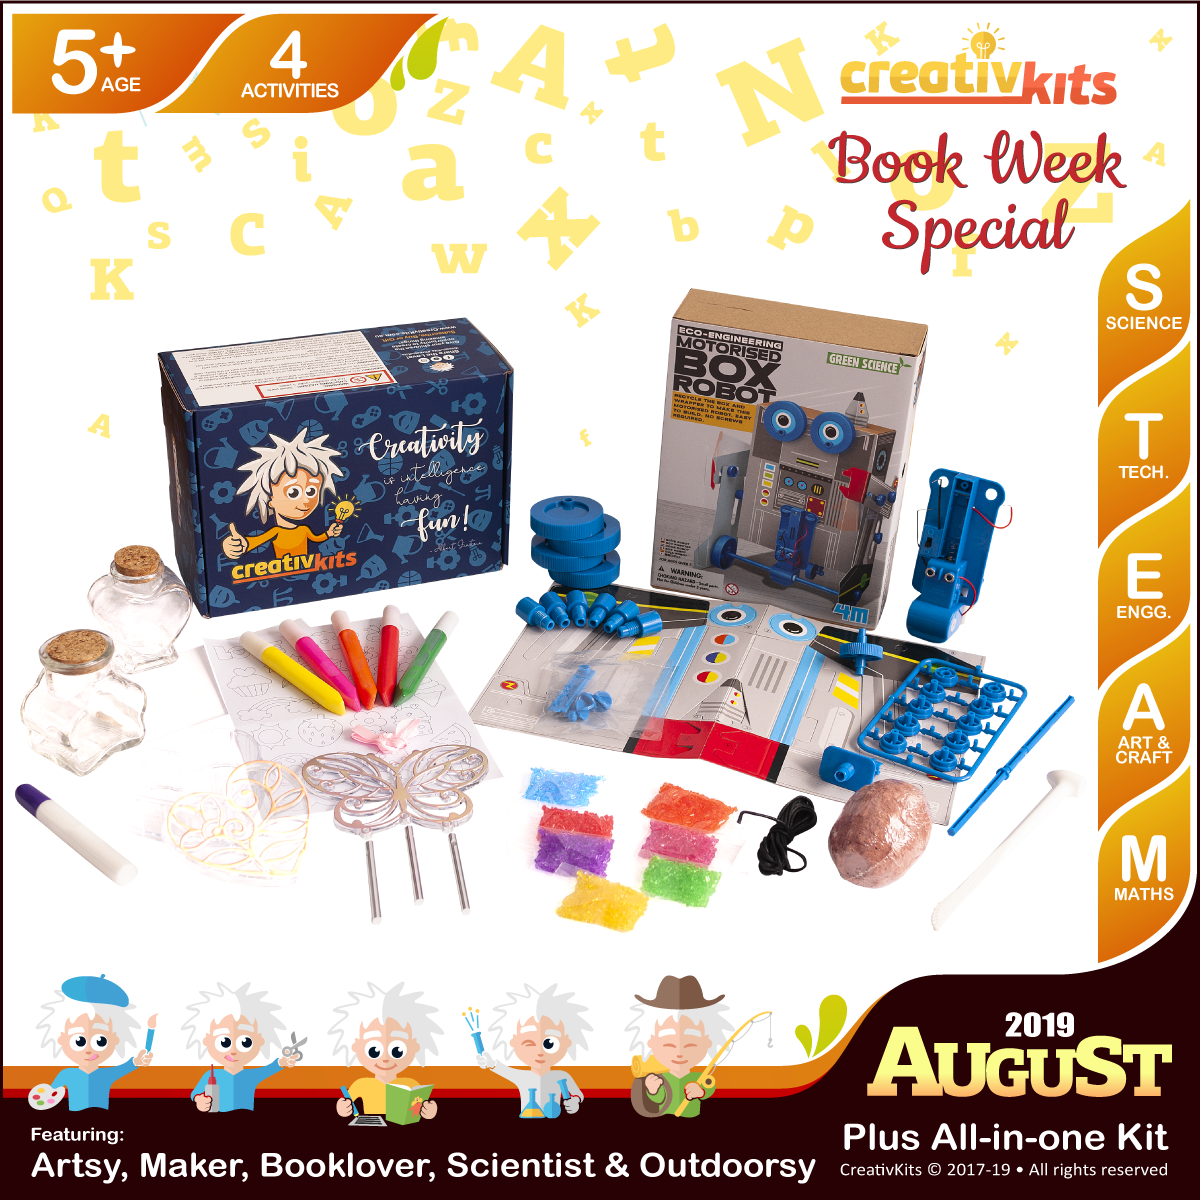 August Plus Kit • Age 5 plus • Box Robot, MYO Wind Chime & Trinket Box, Shark Tooth fossil and Sand Art Bottle Replicas